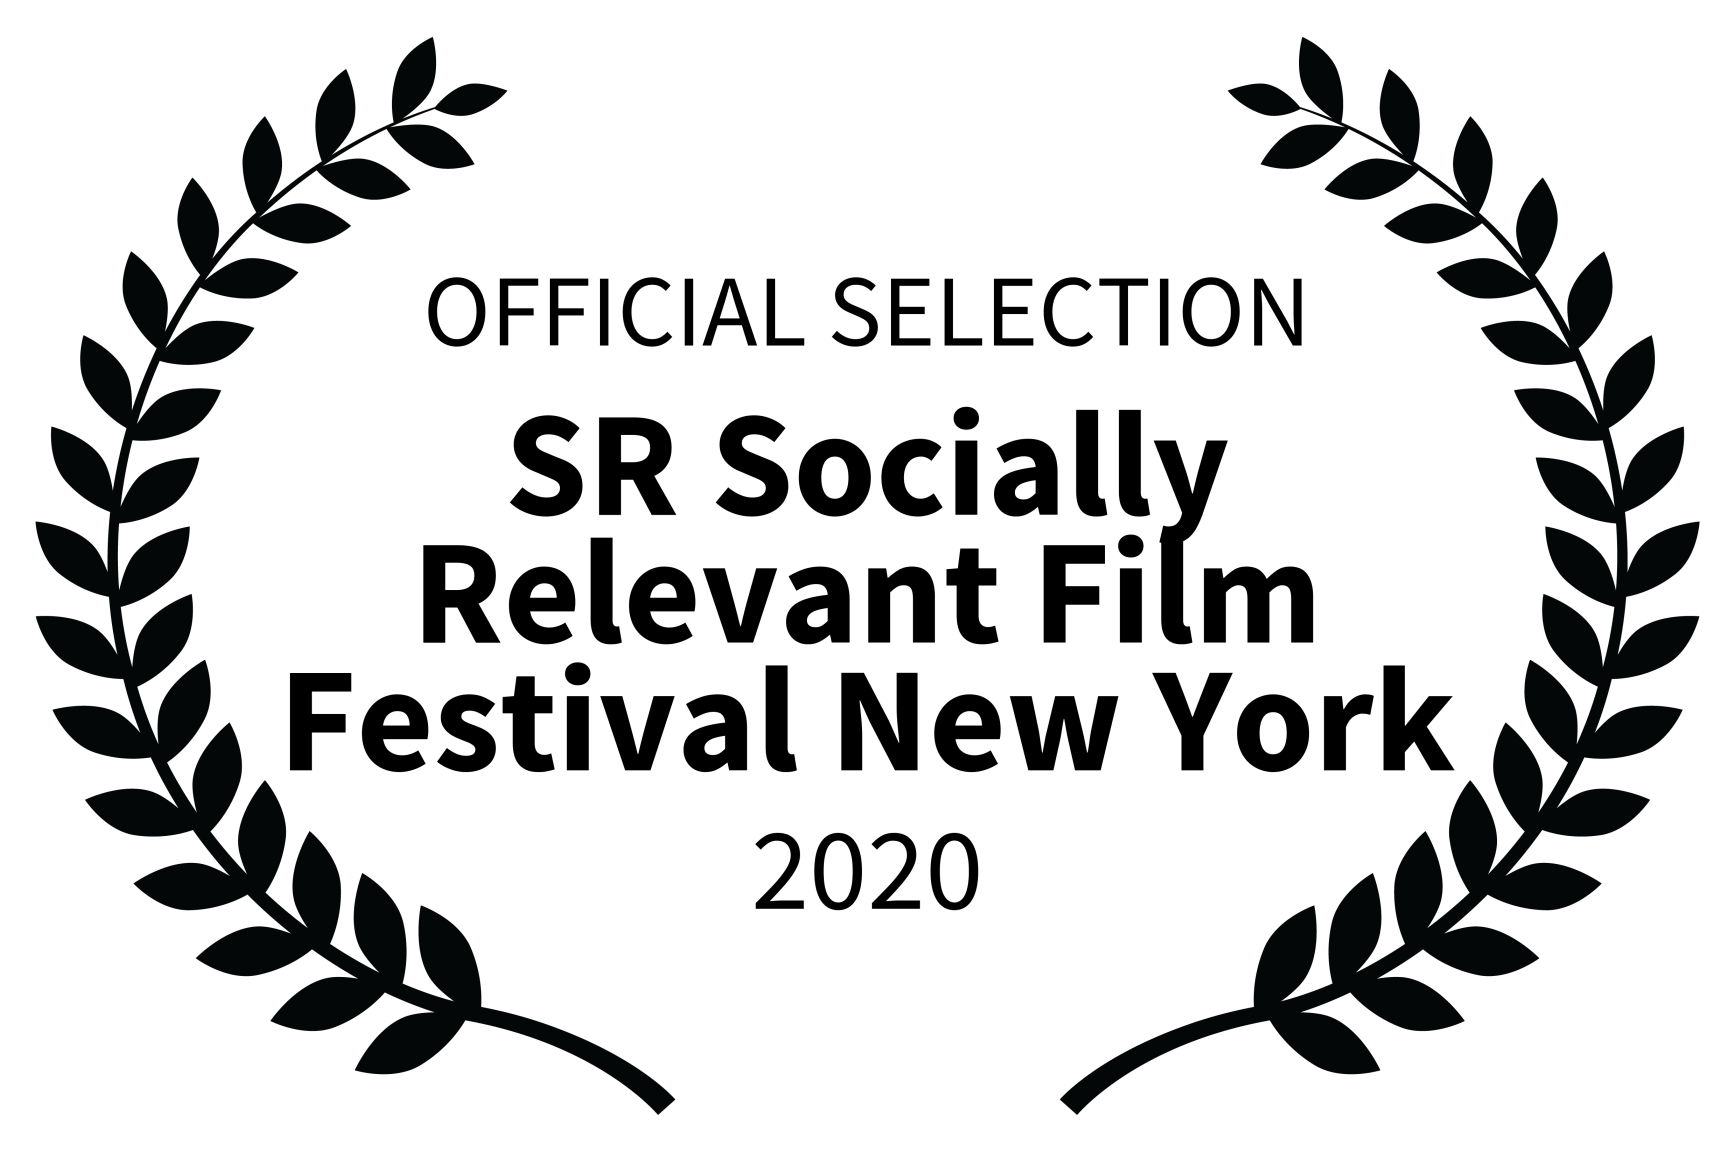 Transference: A Bipolar Love Story Selected for Socially Relevant Film Festival, NYC